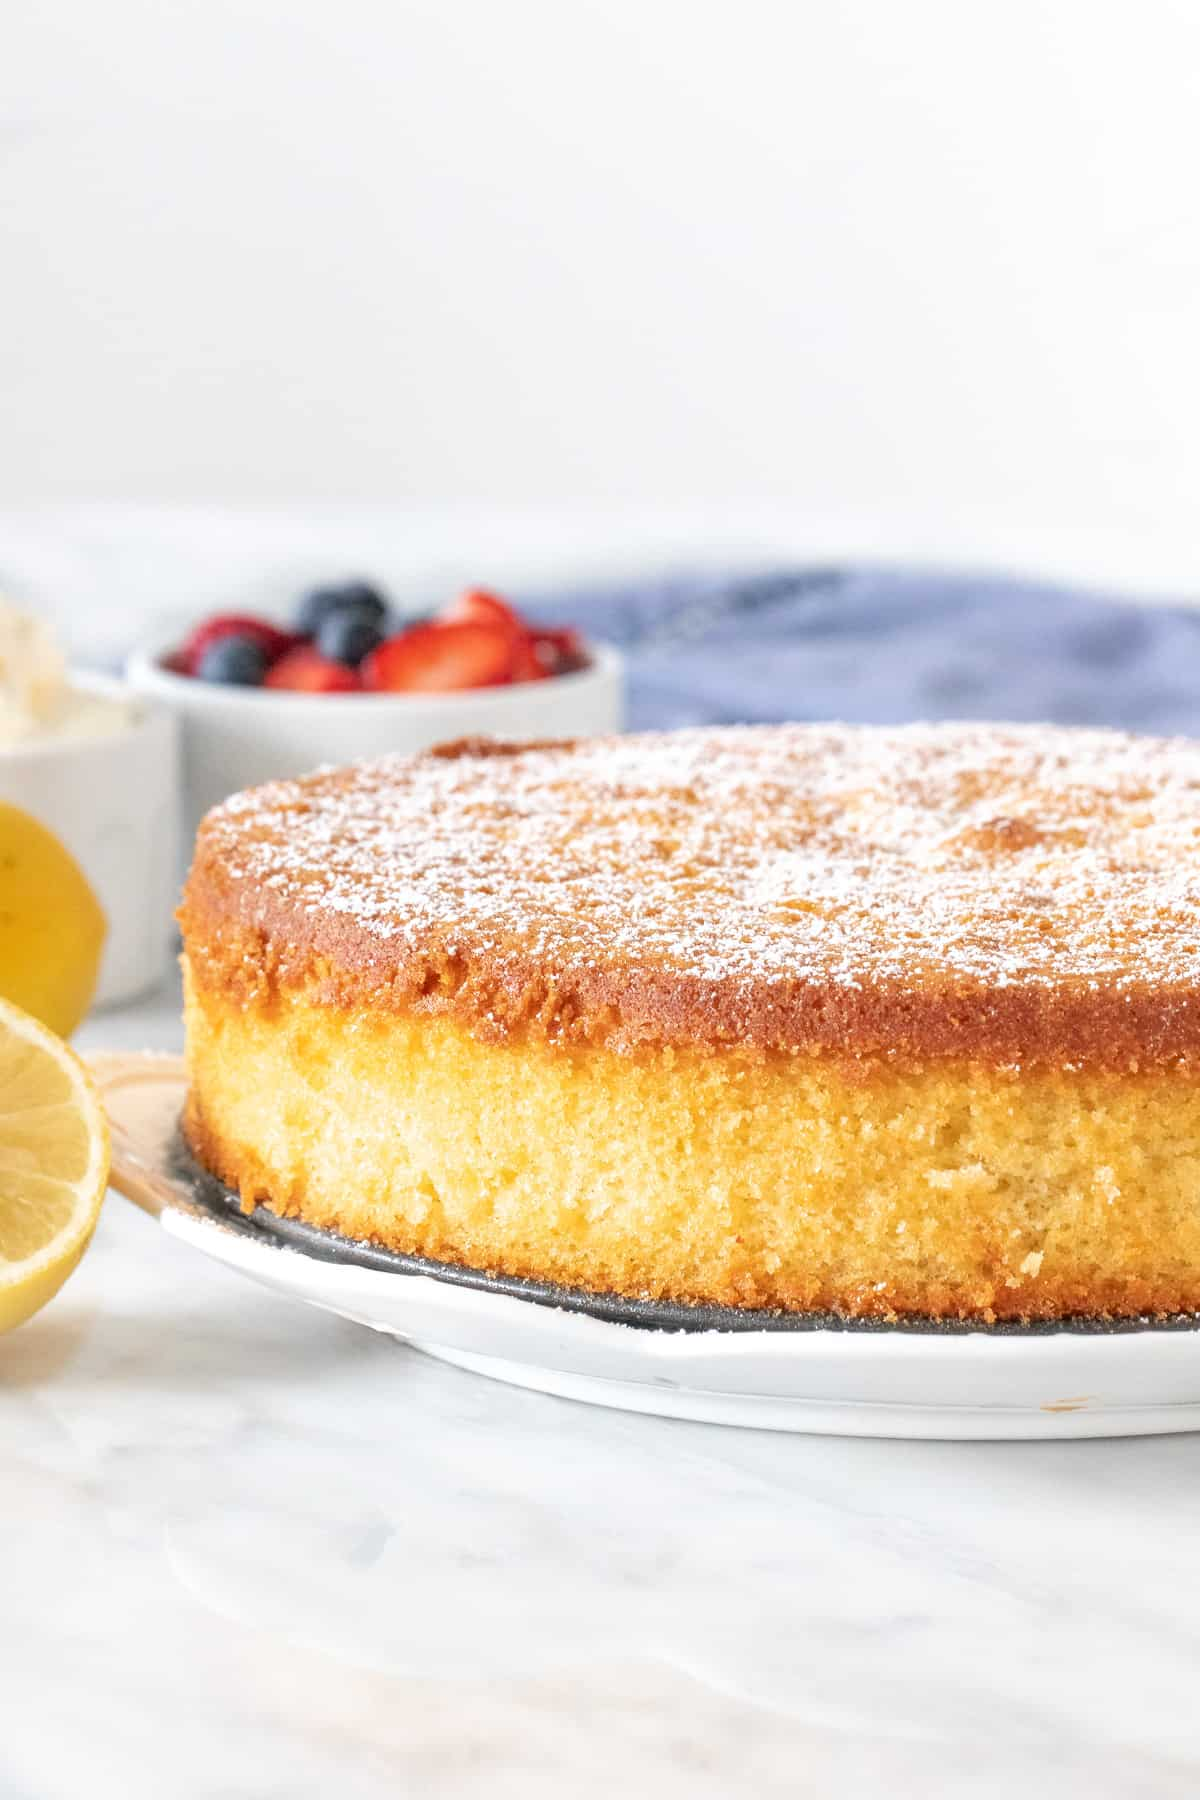 9-inch round lemon cake with powdered sugar sprinkled on top.